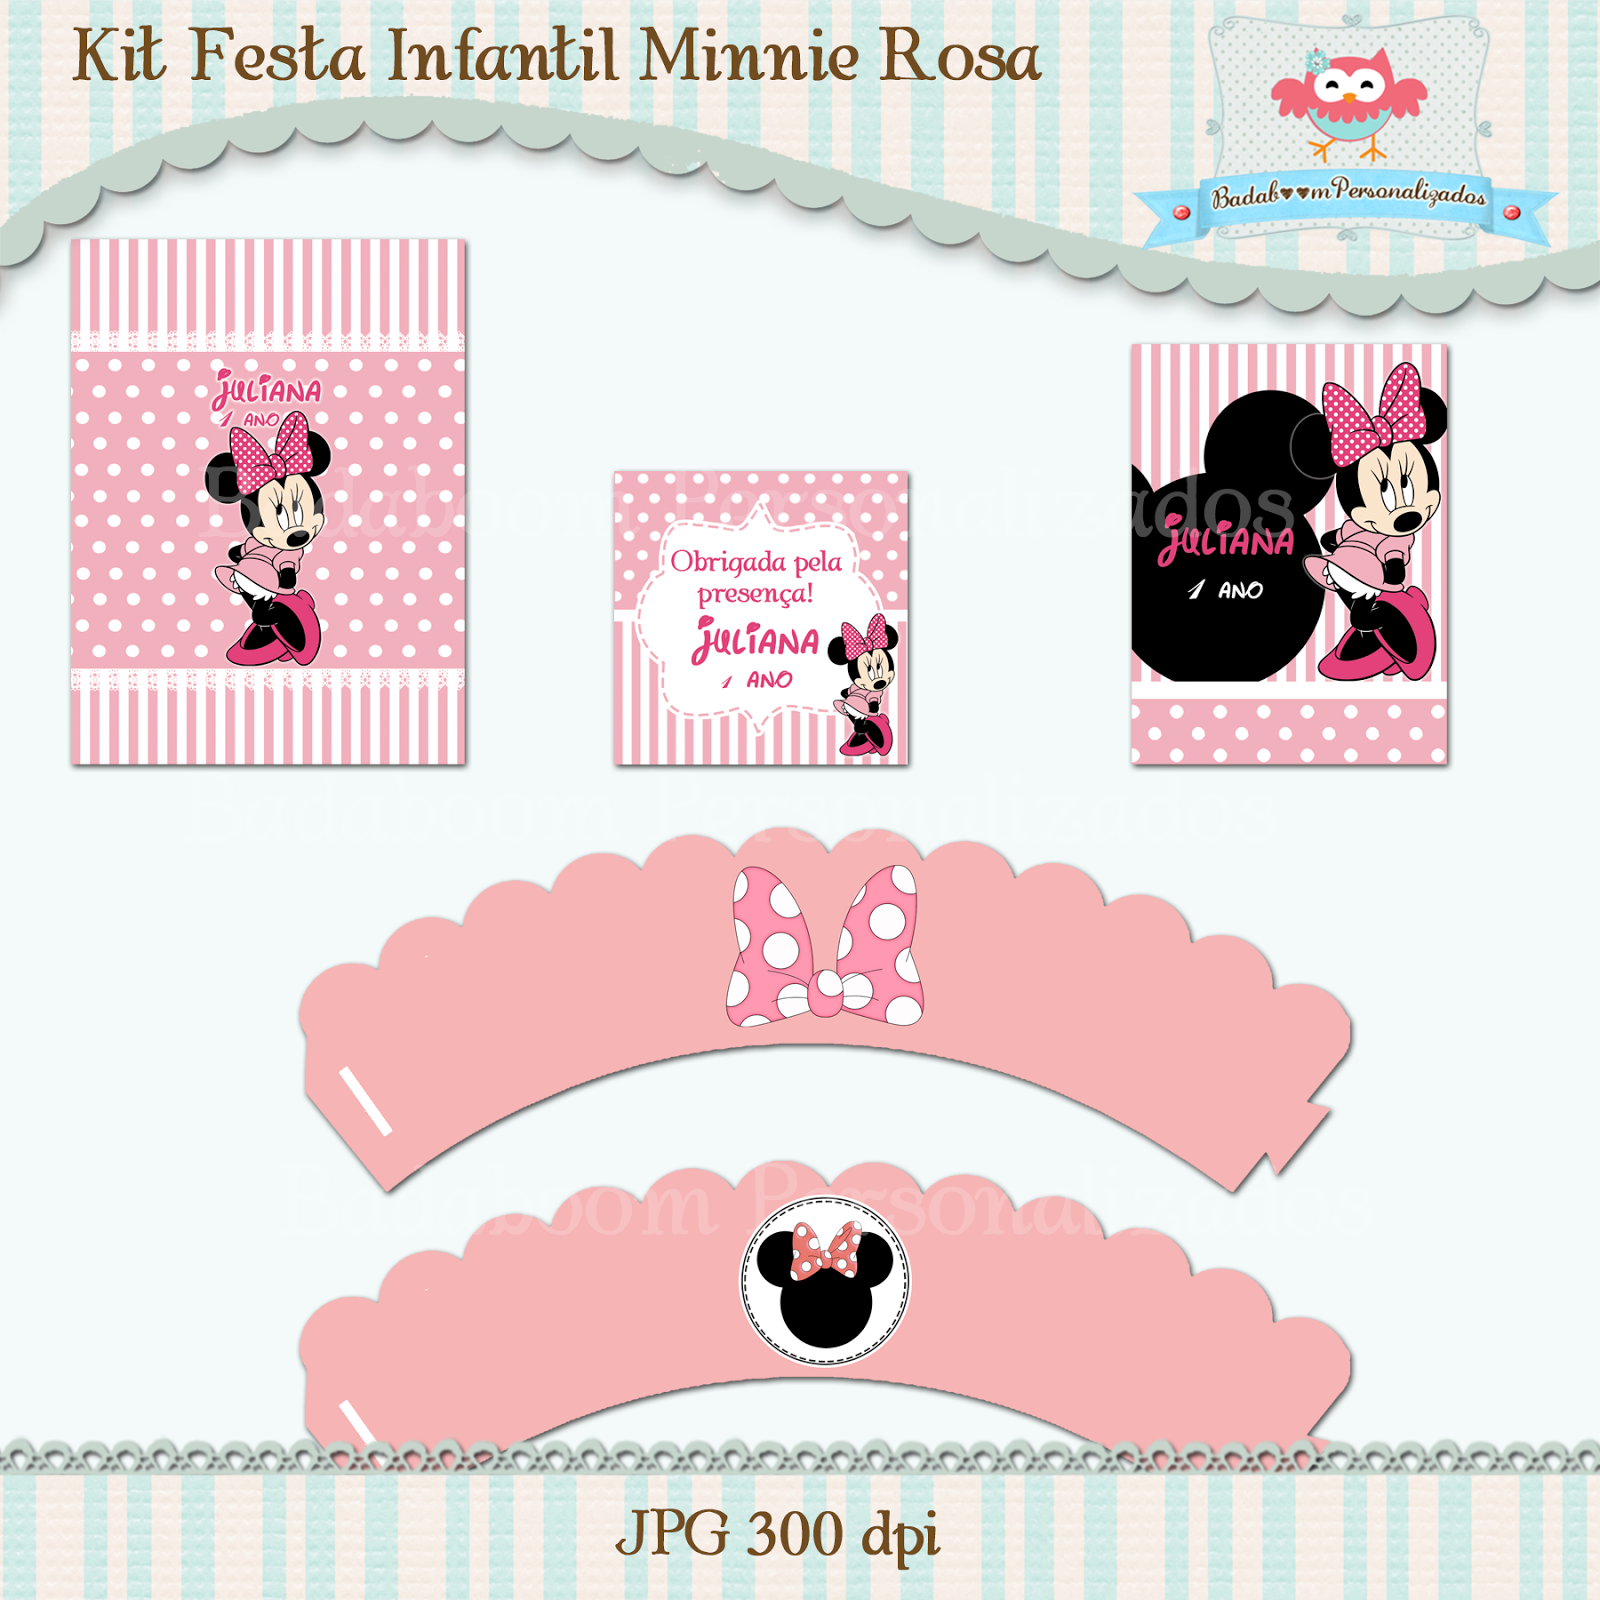 Minnie, rosa, artes digitais, arte digital, kit digital, personalizados, wrapper, saia cupcake, tubete, tag, agradecimento, bisnaga de brigadeiro, rótulos, caixinhas, latinhas, tags, convite